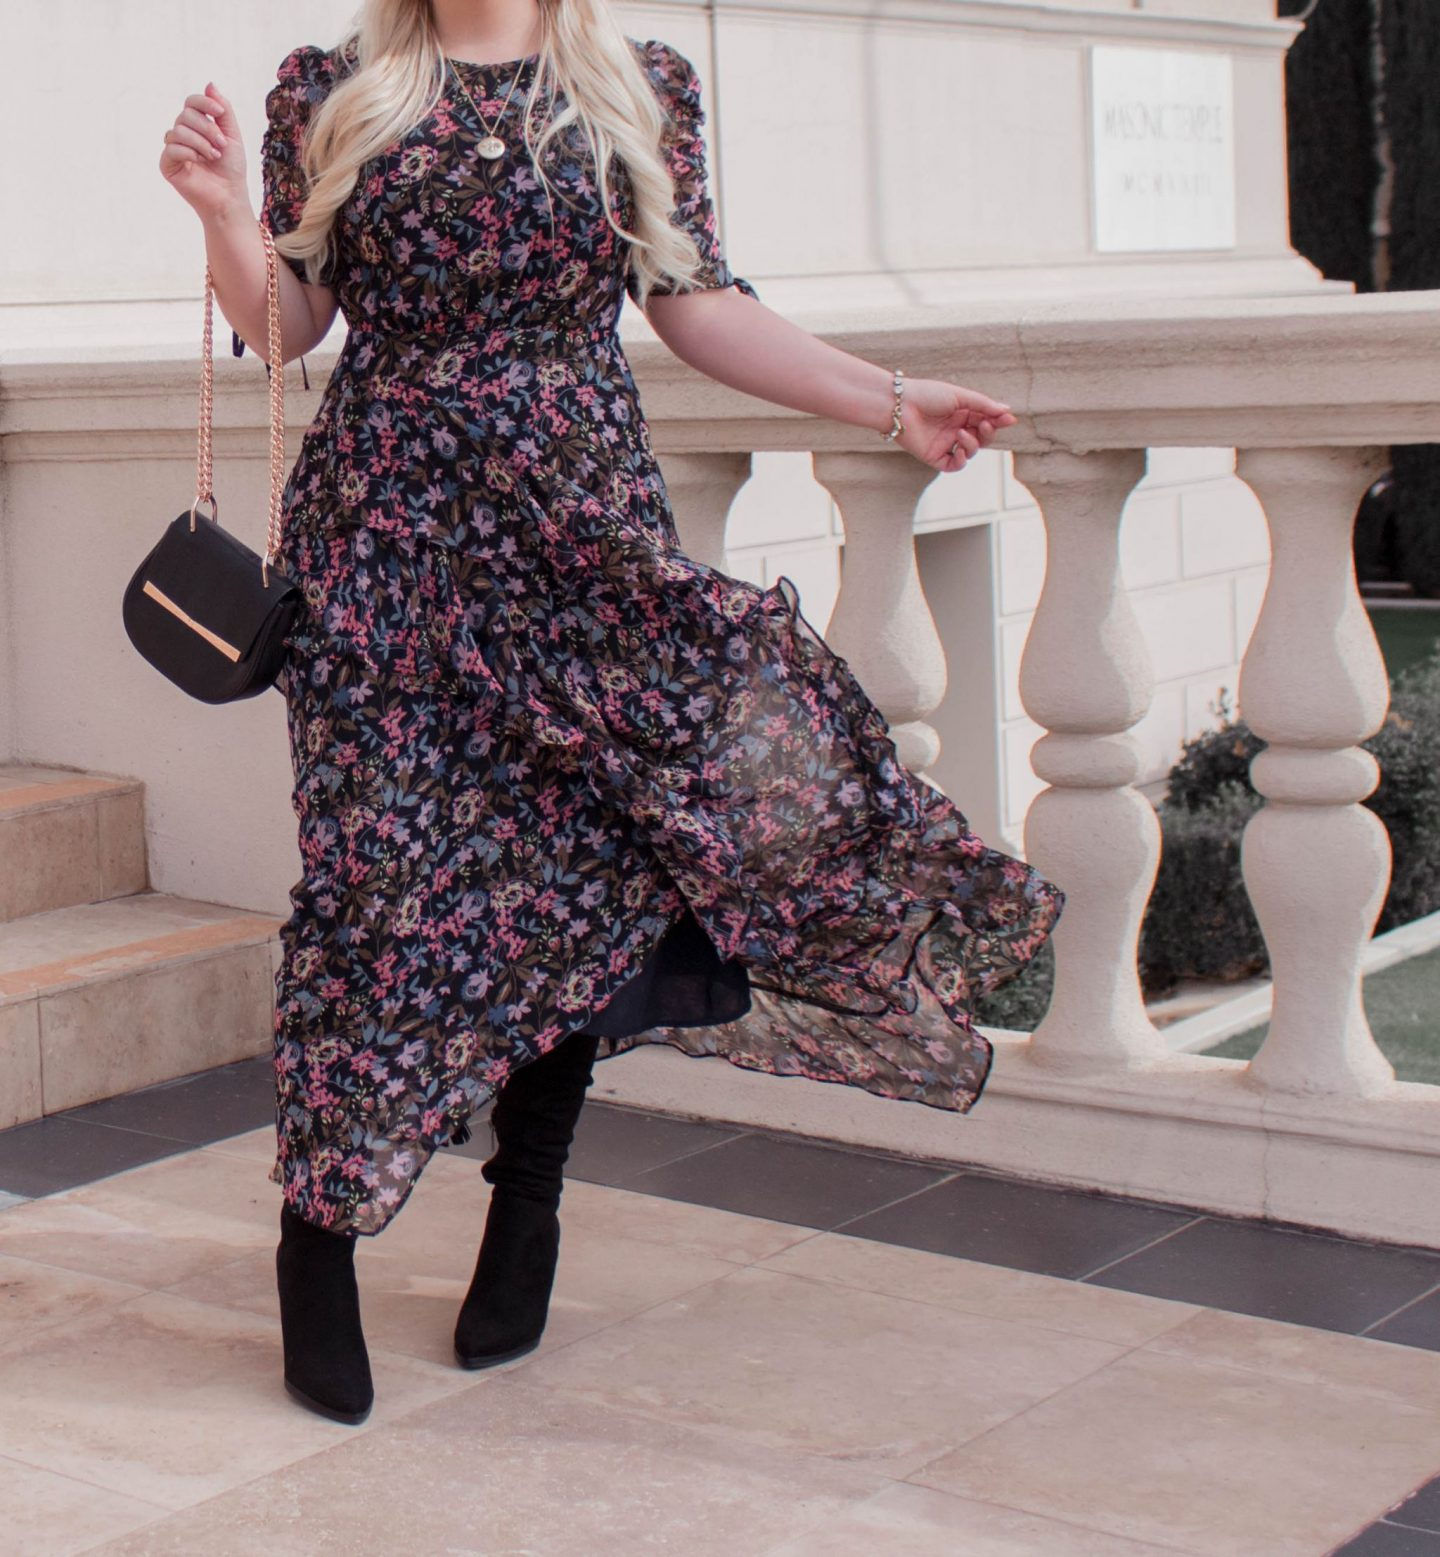 Fashion Blogger Elizabeth Hugen of Lizzie in Lace styles a black floral midi dress with Mark Fisher over the knee boots